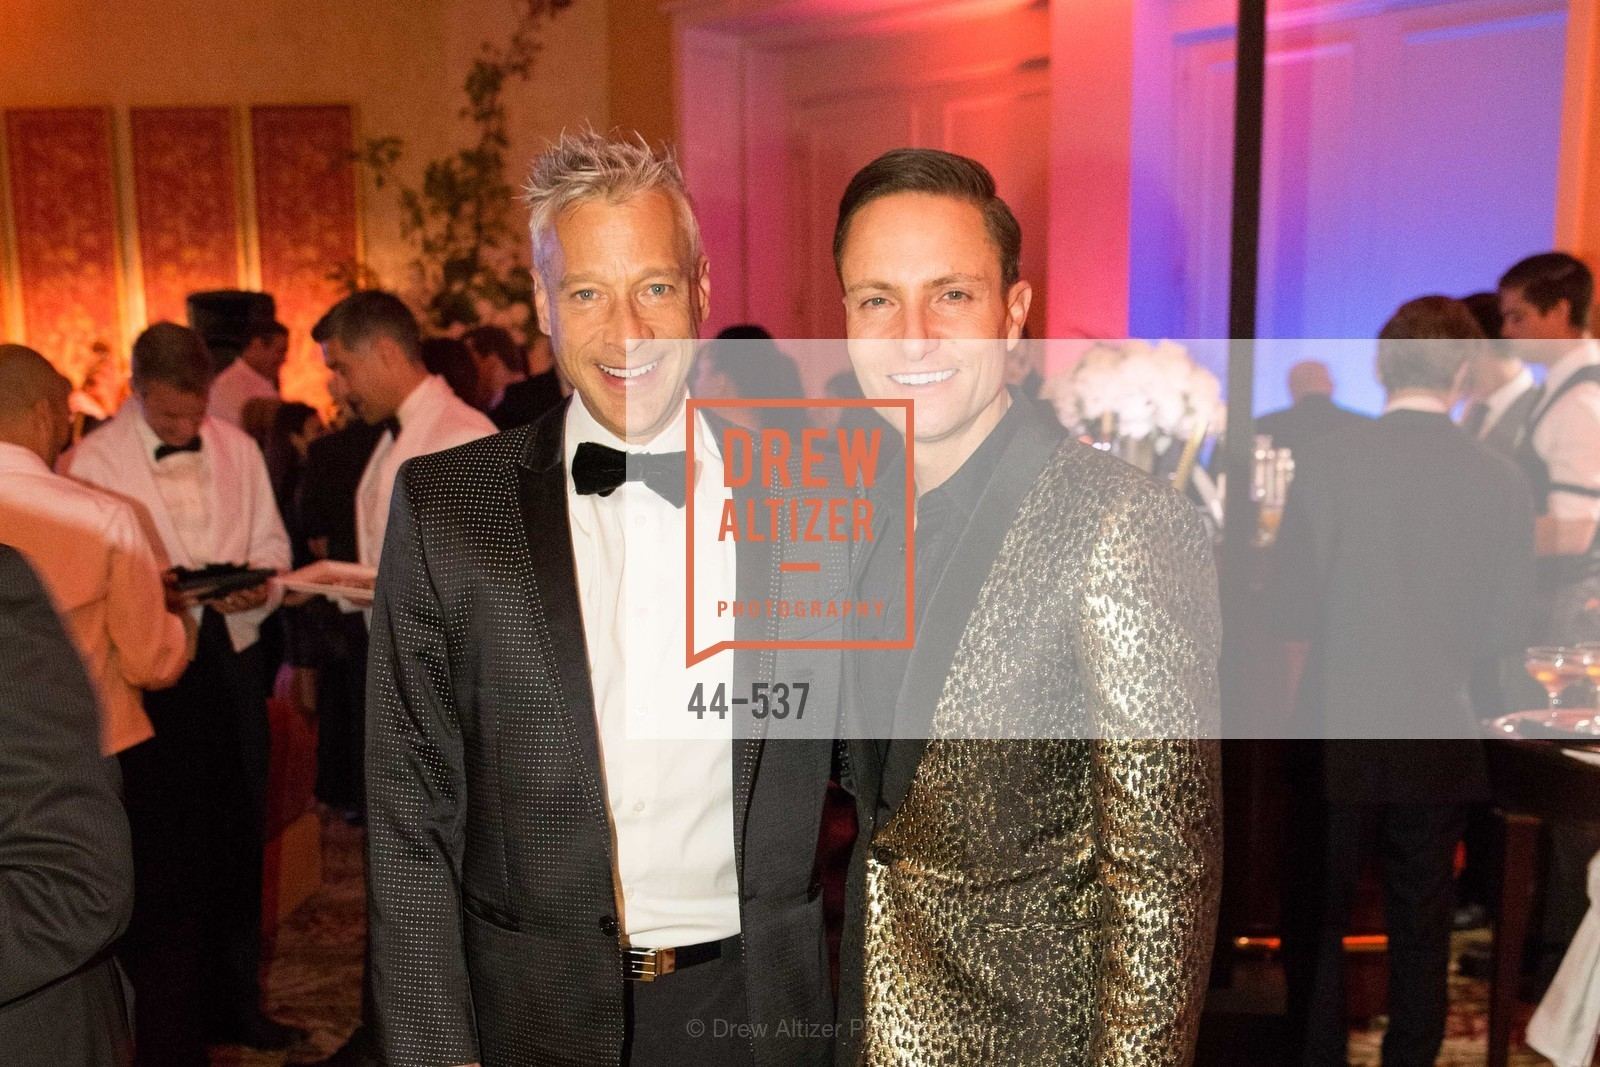 Kurt Wootton, Ken Fulk, TOP OF THE MARK'S 75TH Anniversary Party, US, November 7th, 2014,Drew Altizer, Drew Altizer Photography, full-service agency, private events, San Francisco photographer, photographer california